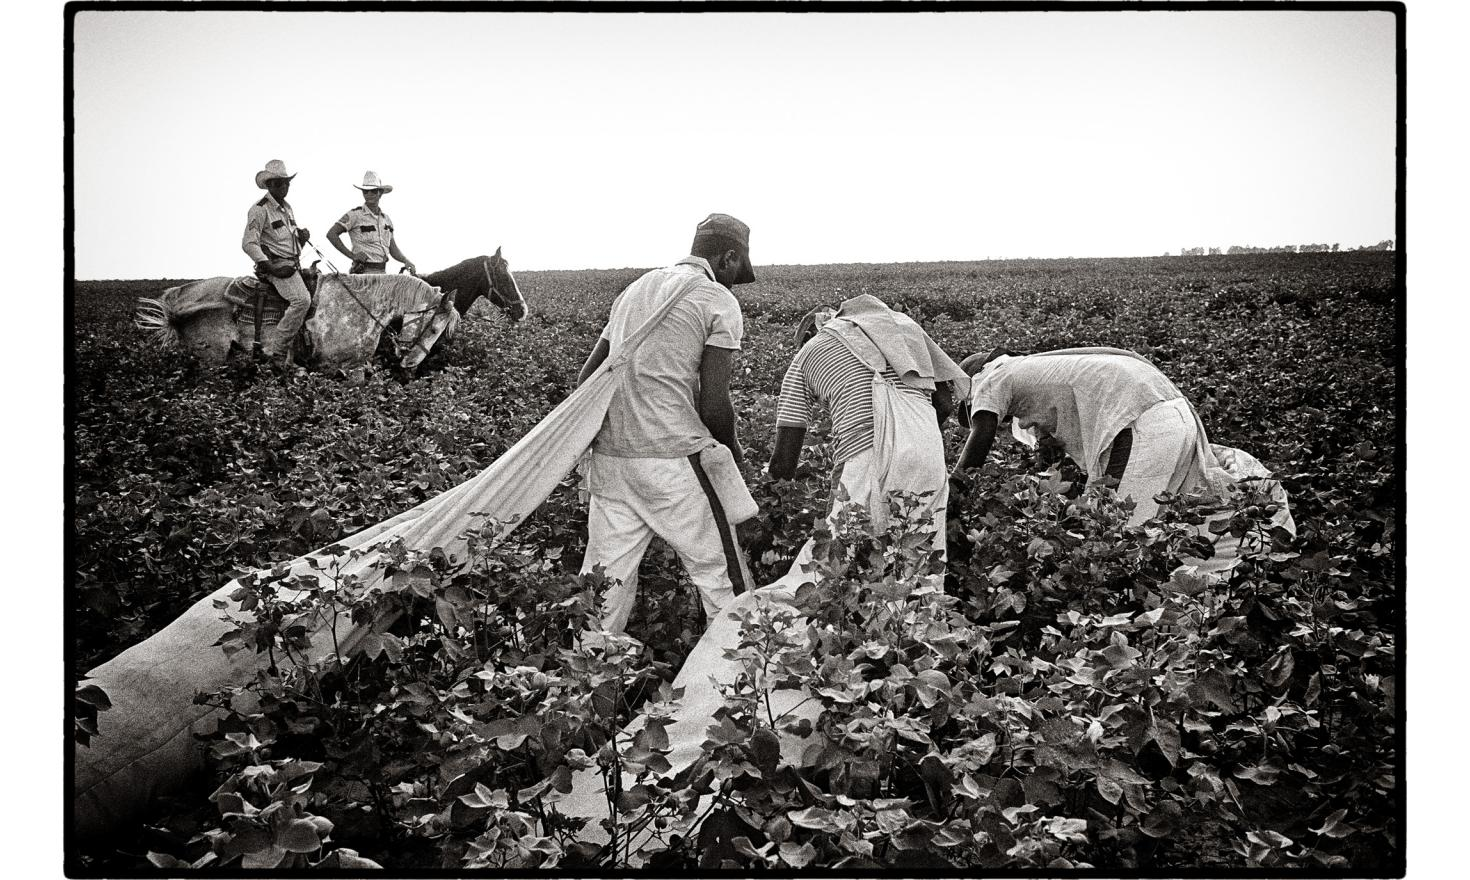 Mississippi State Penitentiary (MSP), also known as Parchman Farm, is a prison farm, the oldest prison, and the only maximum security prison for men in the state of Mississippi. Death penalty is still enforced. Prisonniers pick up cotton by hand - 1986.